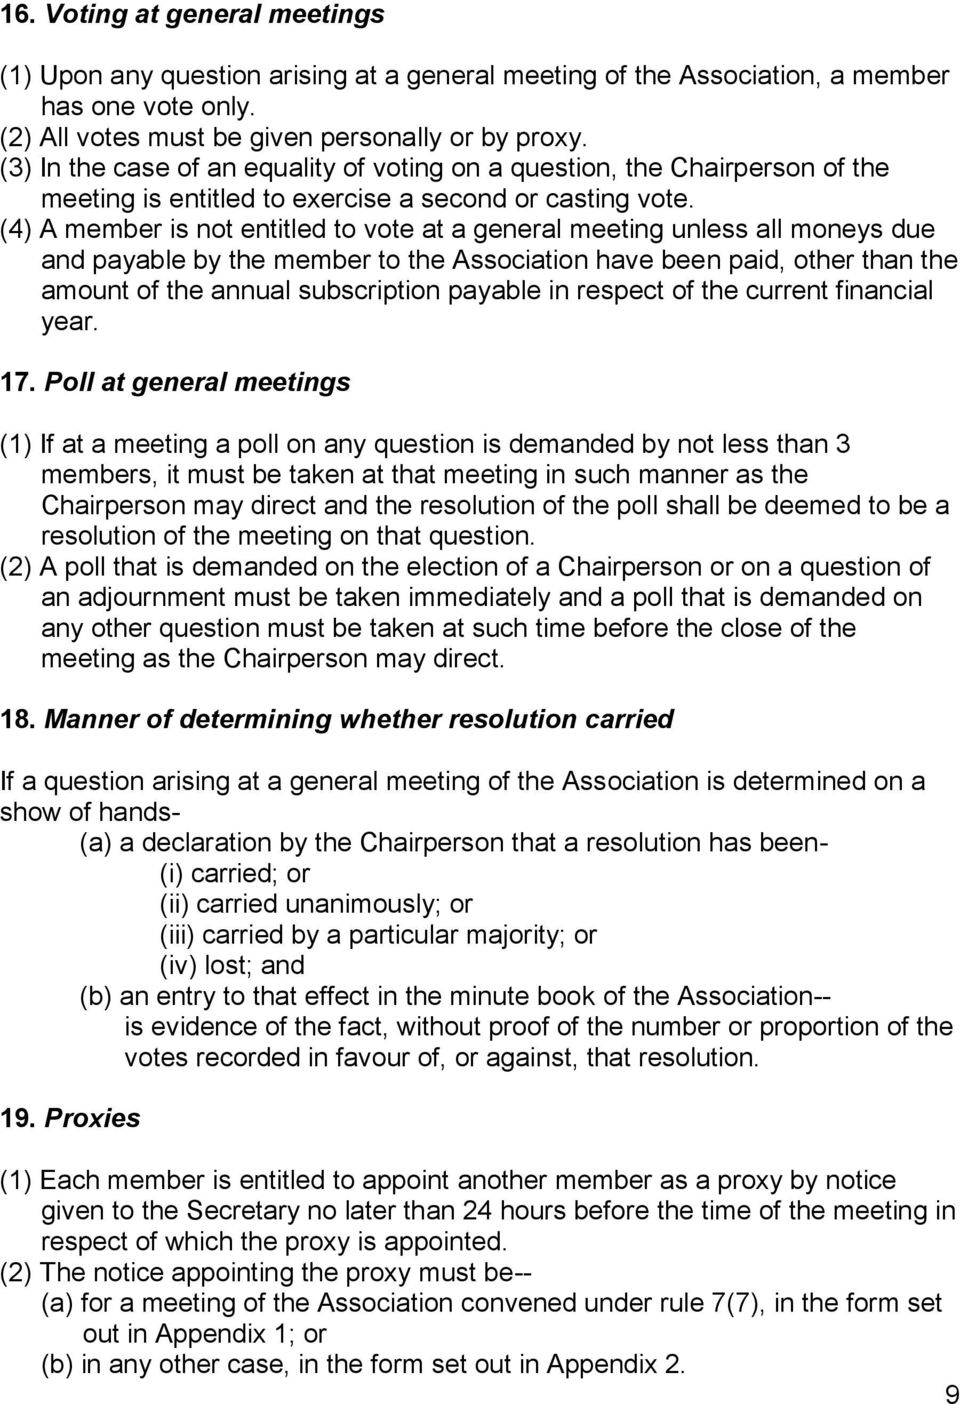 (4) A member is not entitled to vote at a general meeting unless all moneys due and payable by the member to the Association have been paid, other than the amount of the annual subscription payable